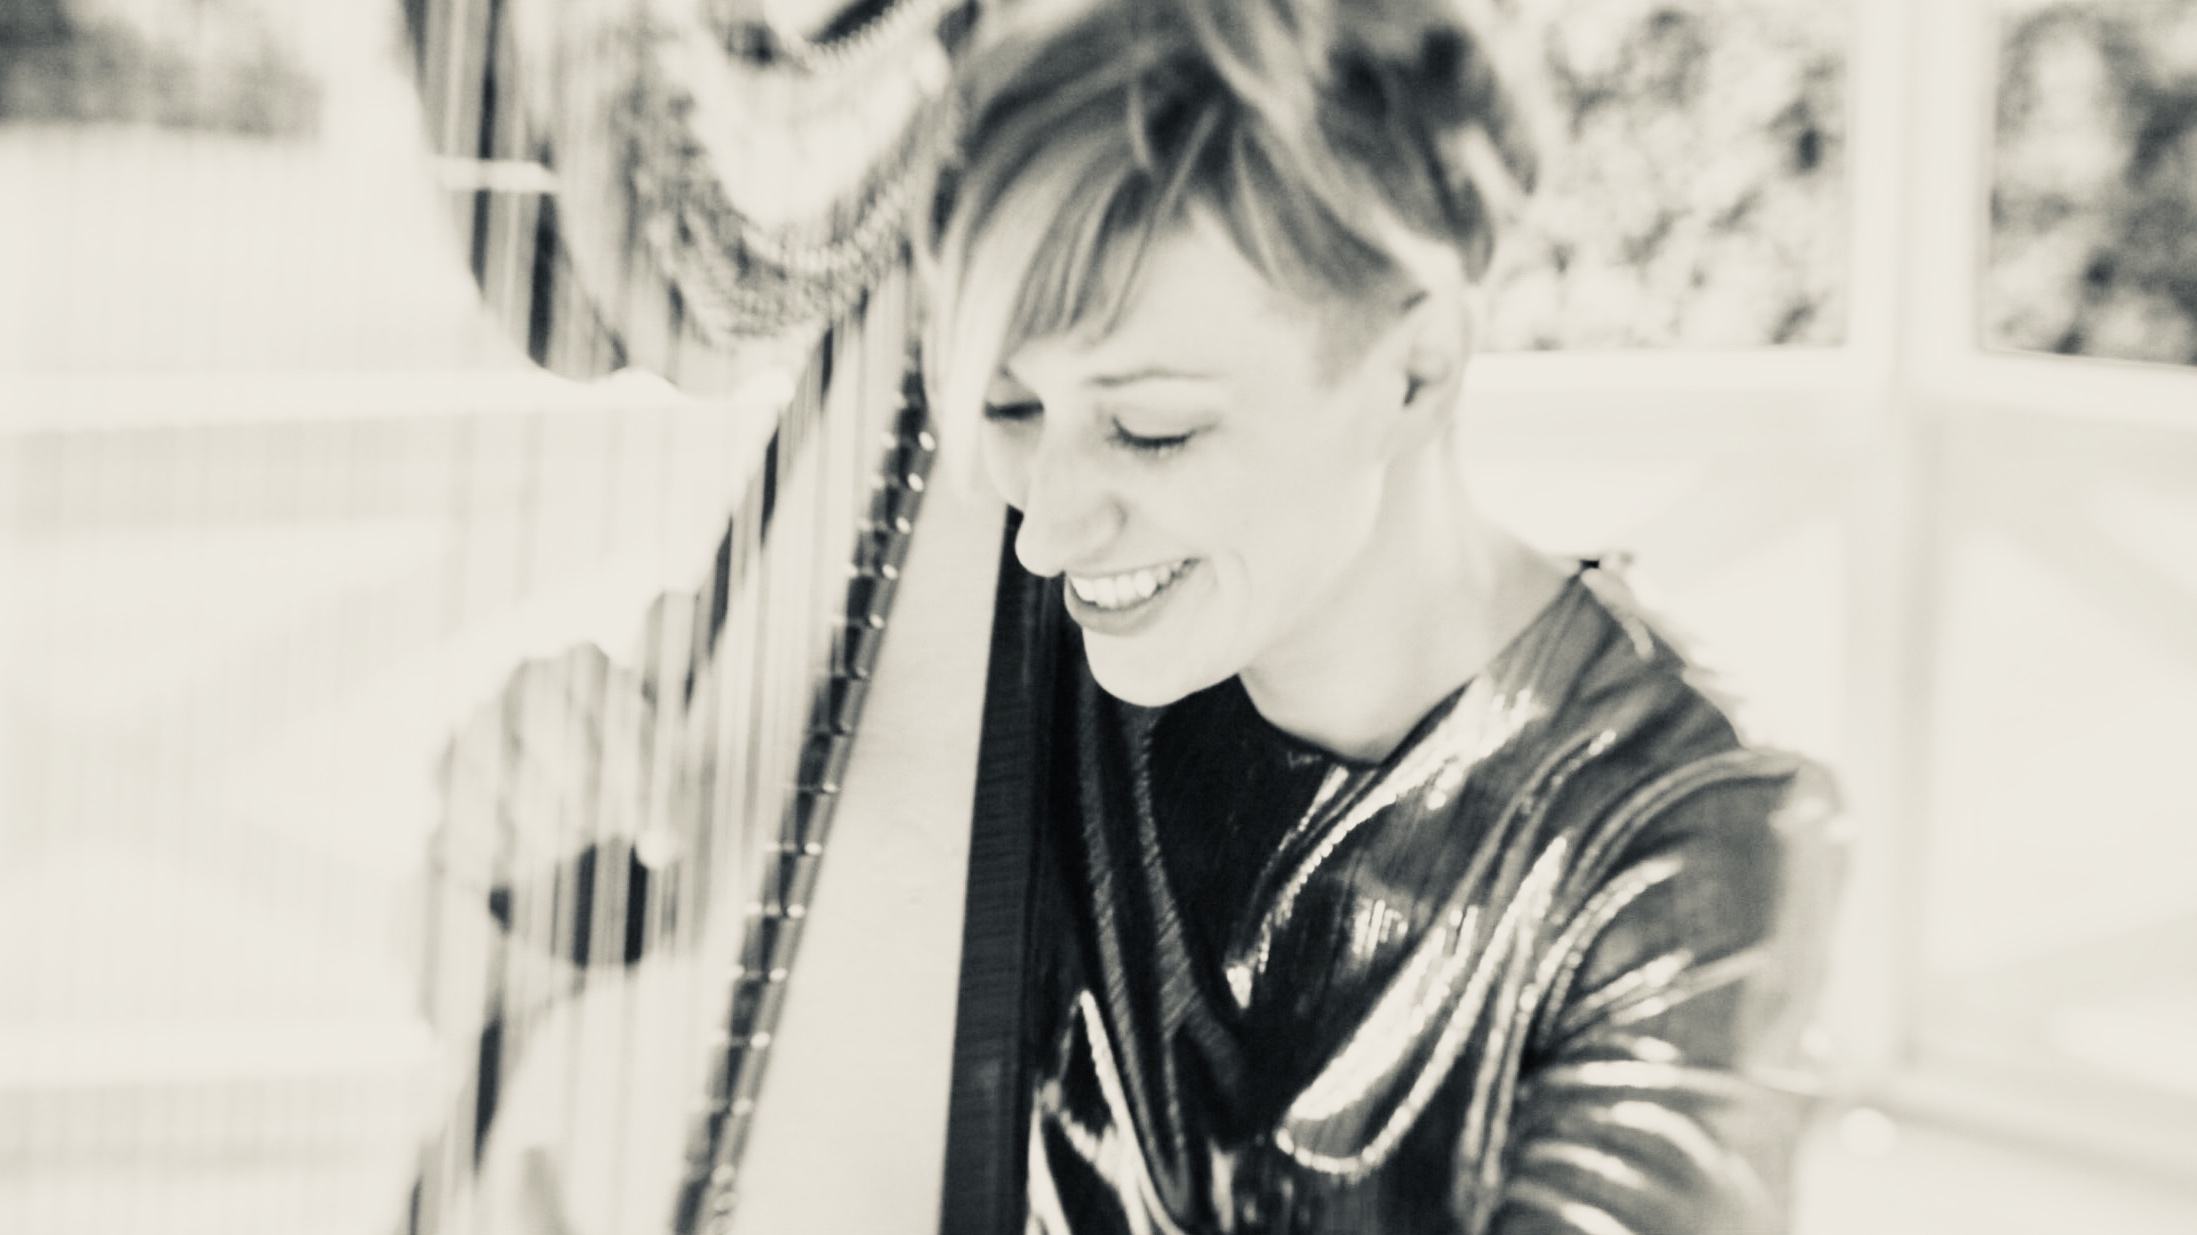 Jemima Phillips Harpist Profile Reduced.jpg